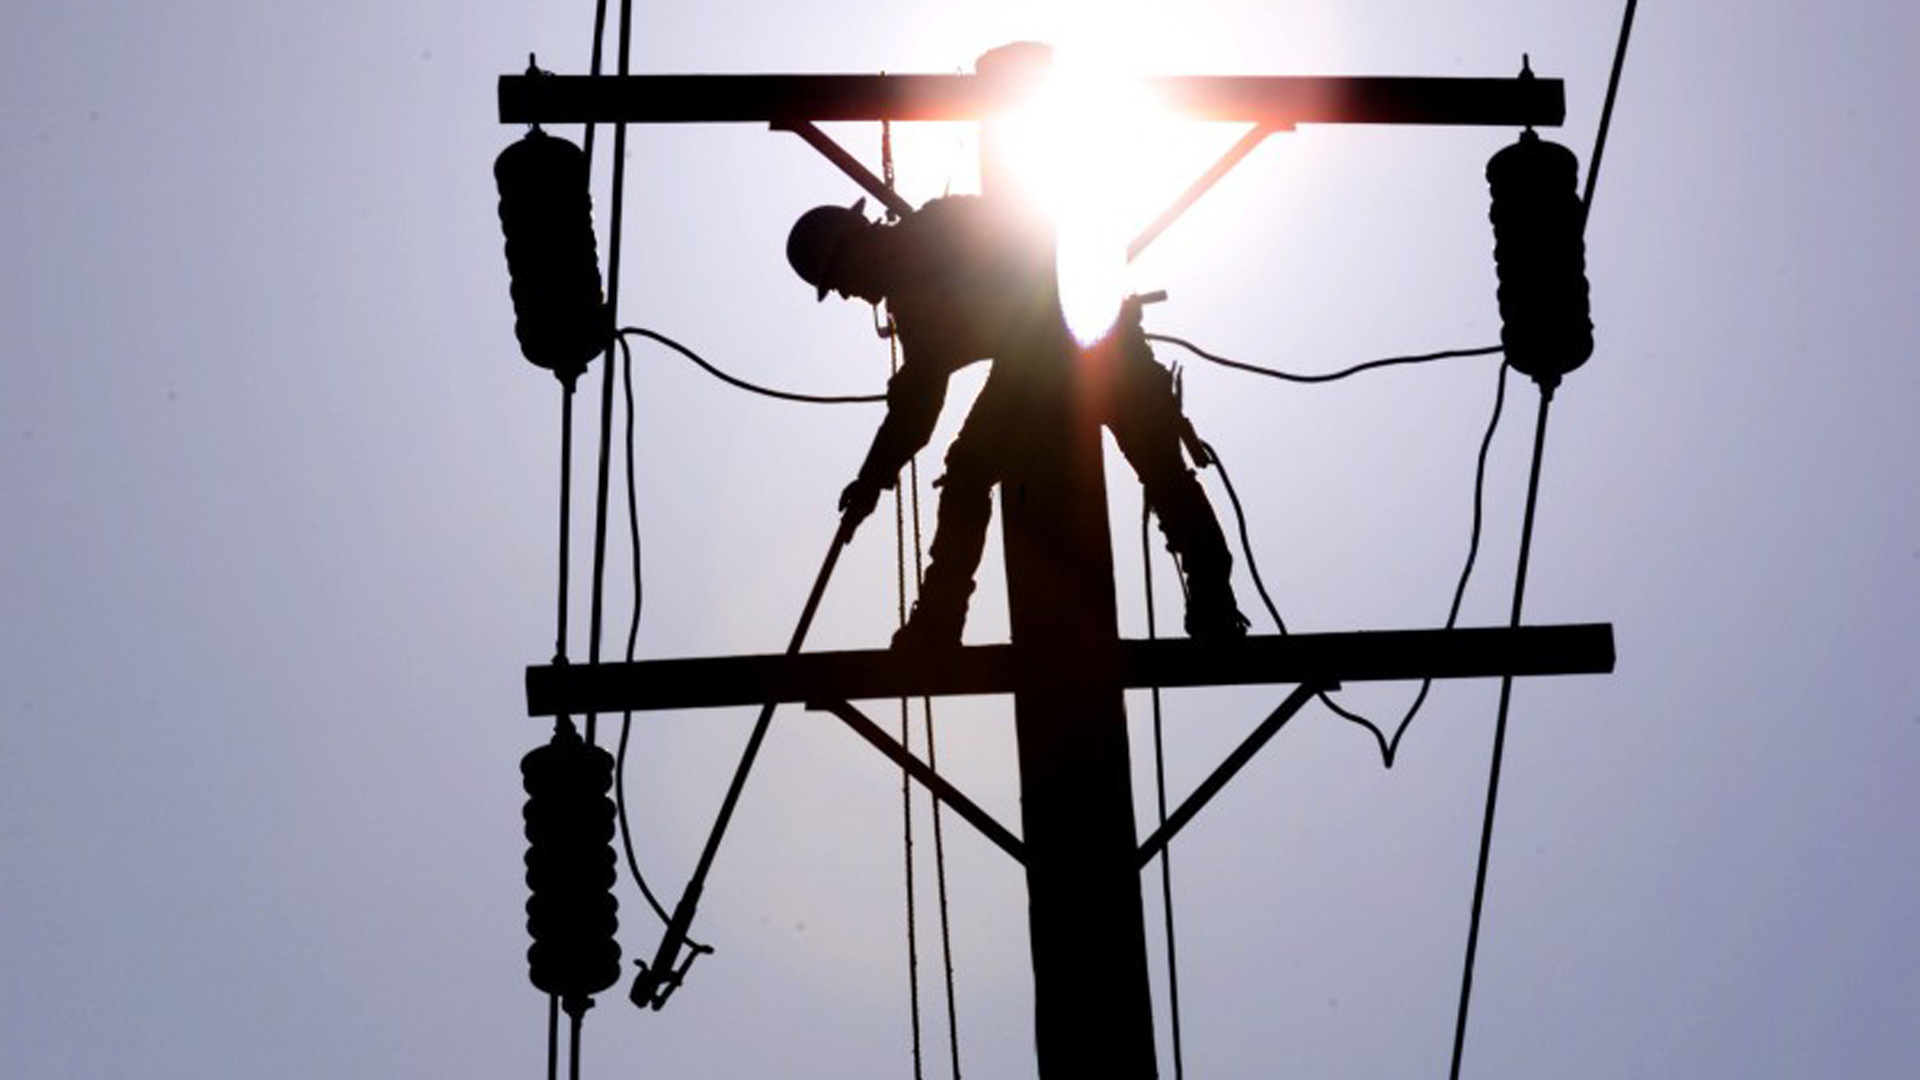 A Southern California Edison lineman grounds a power line in La Habra. The utility is considering shutting off power to 32,500 customers ahead of high winds.(Credit: Los Angeles Times)